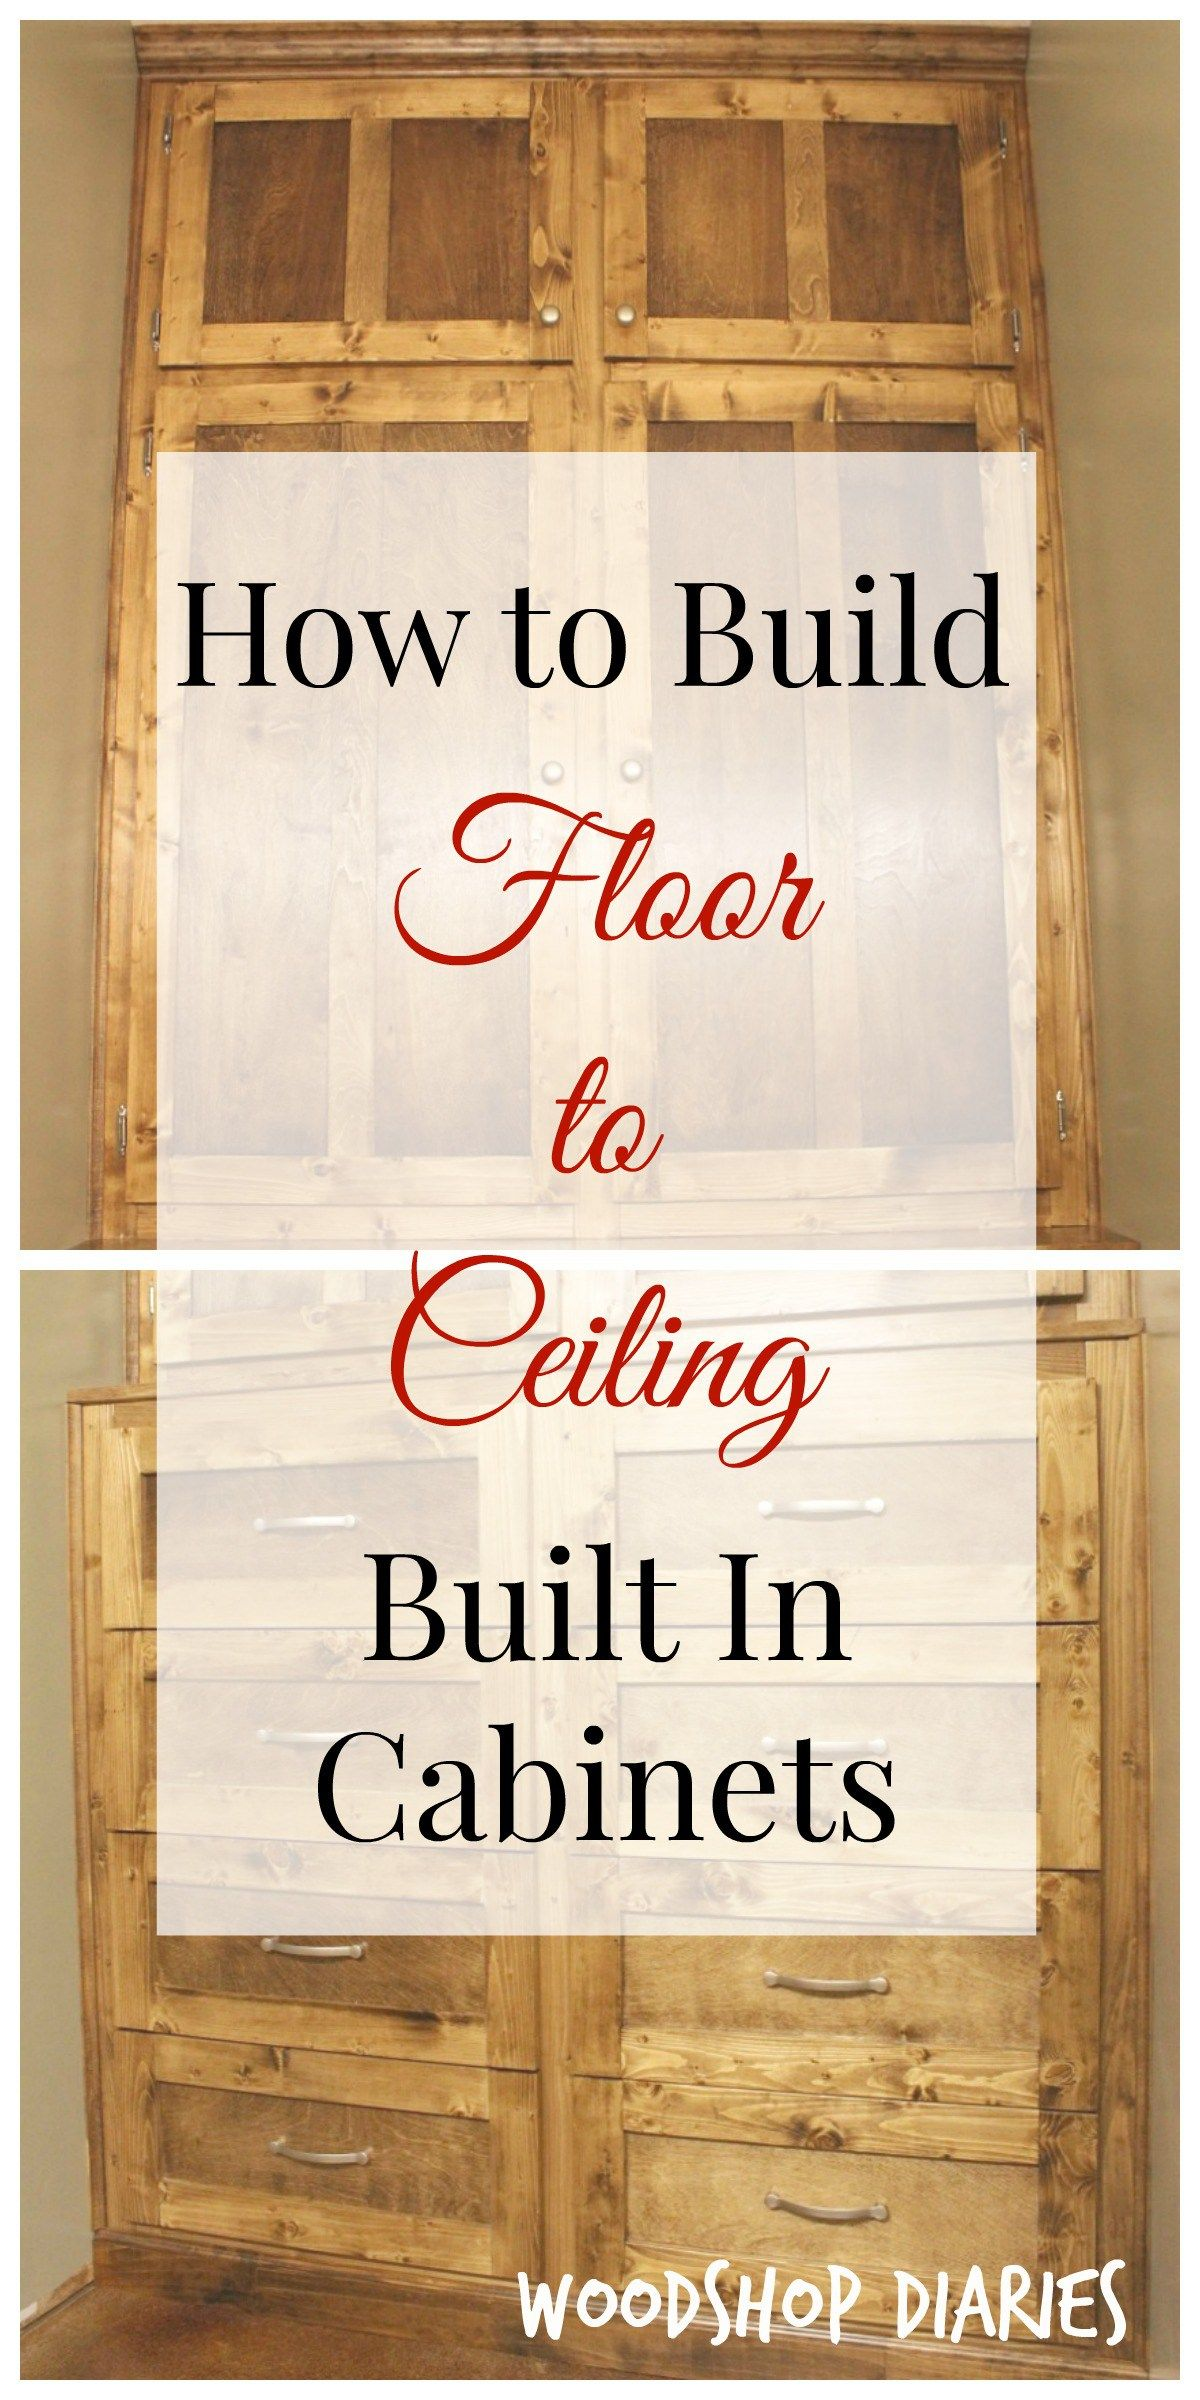 How to Build Floor to Ceiling Built Ins - Diy flooring, Woodworking projects diy, Diy built in wardrobes, Diy kitchen storage cabinet, Diy furniture plans, Diy ceiling - How to build floor to ceiling built insthis easy how to guide is easy to follow and customize to your own size and space!